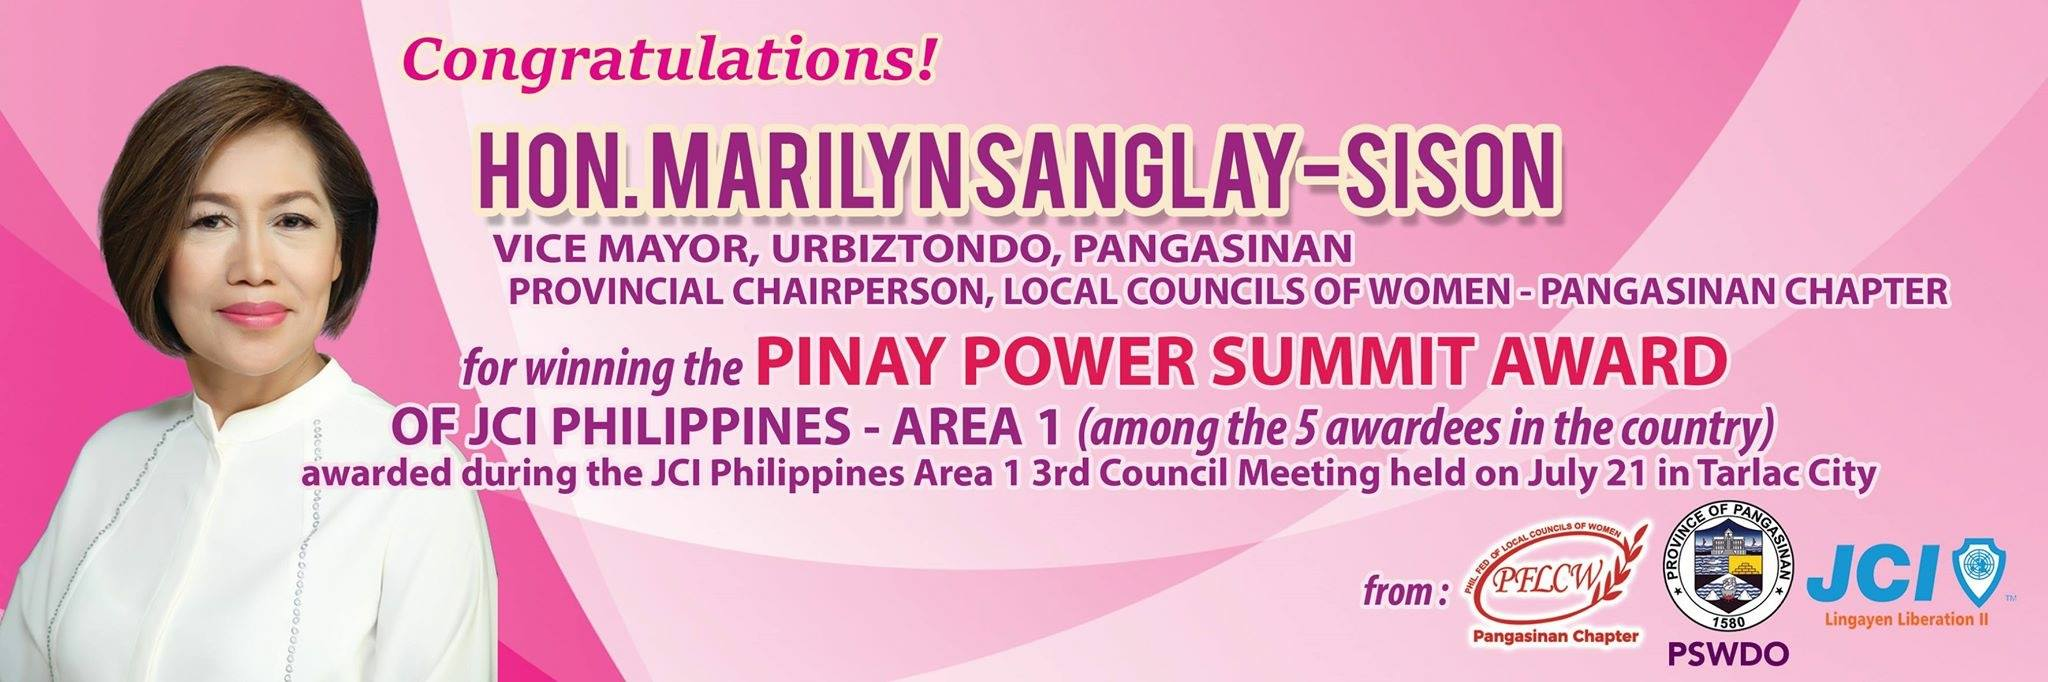 SP hails Urbiztondo Vice Mayor Marilyn Sanglay-Sison for winning the Pinay Power Summit